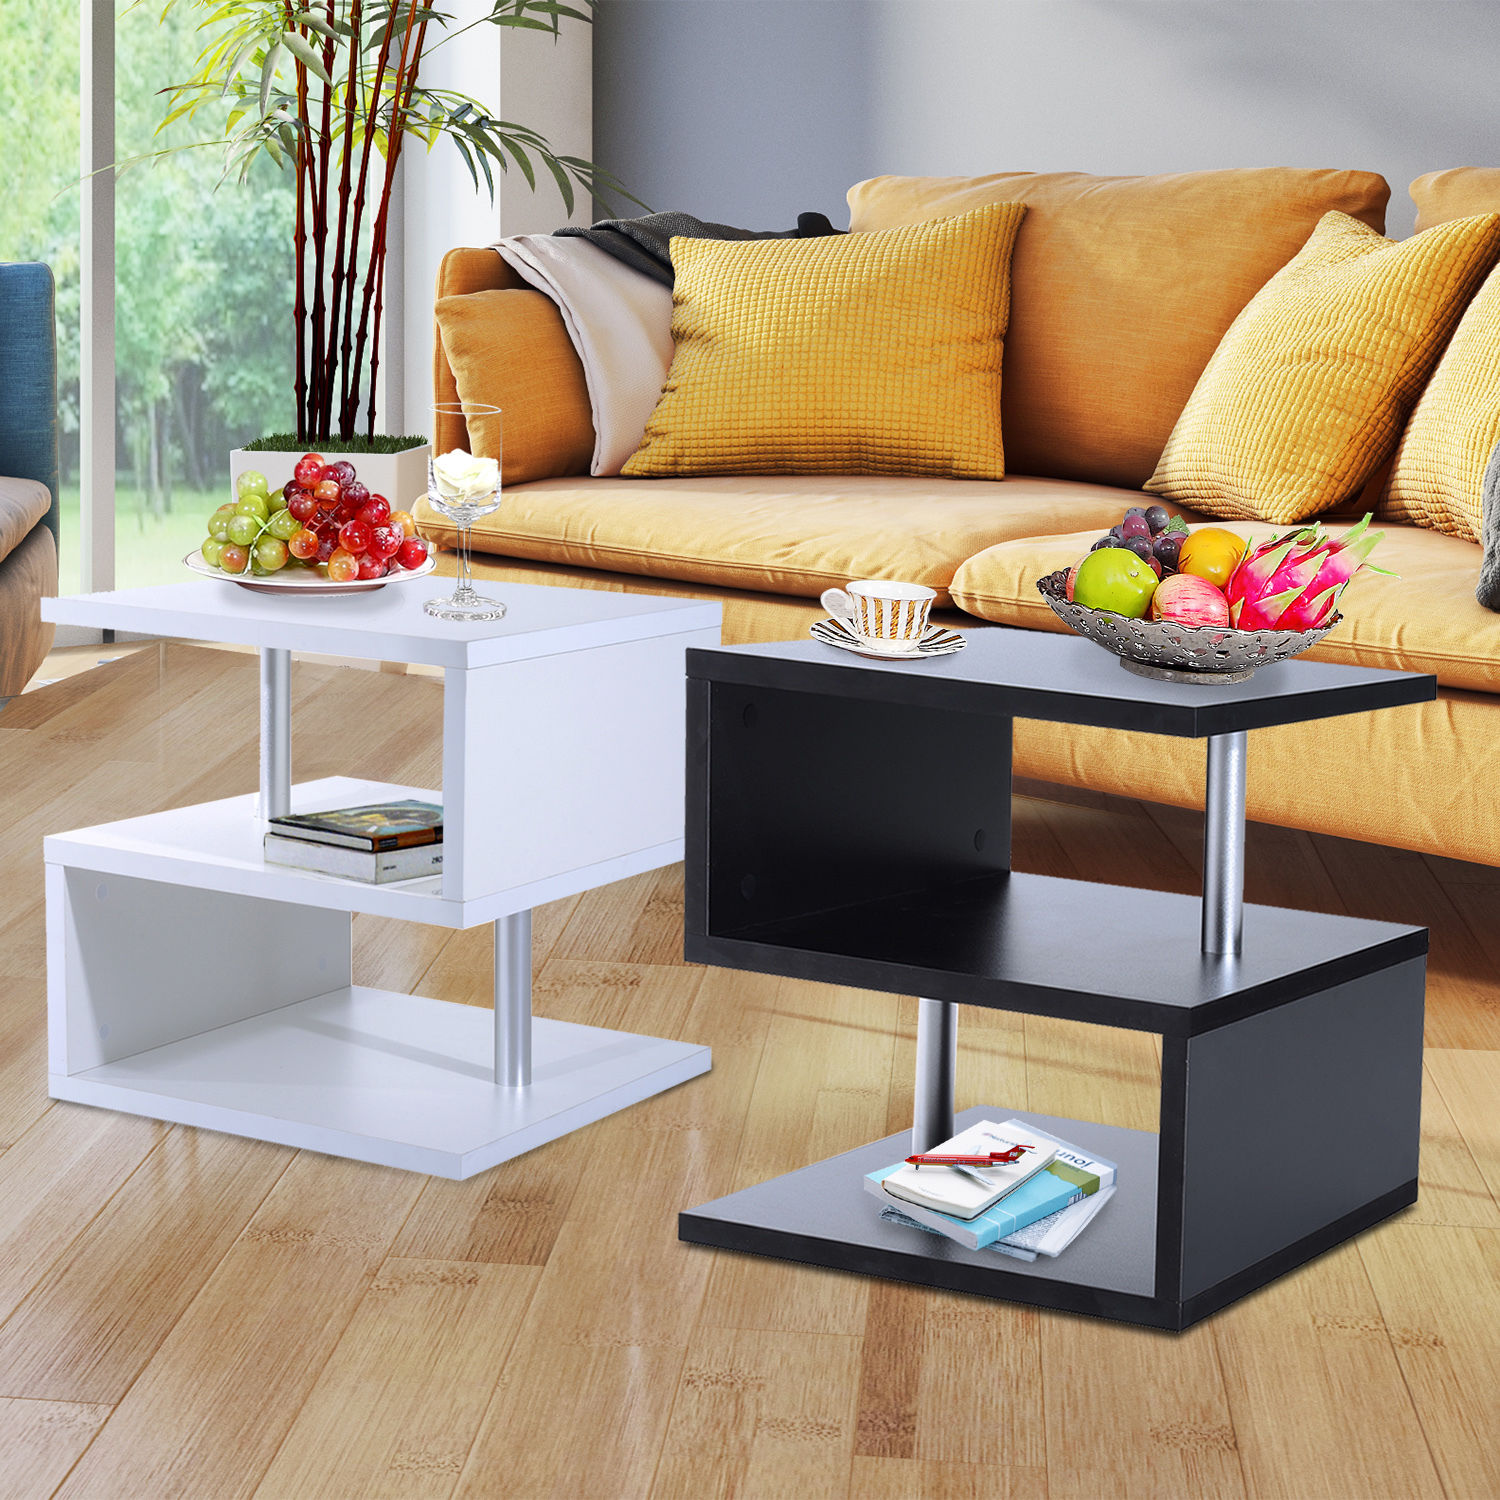 Details About Modern Coffee Table Side End Table 2 Shelf Storage Living  Room Furniture